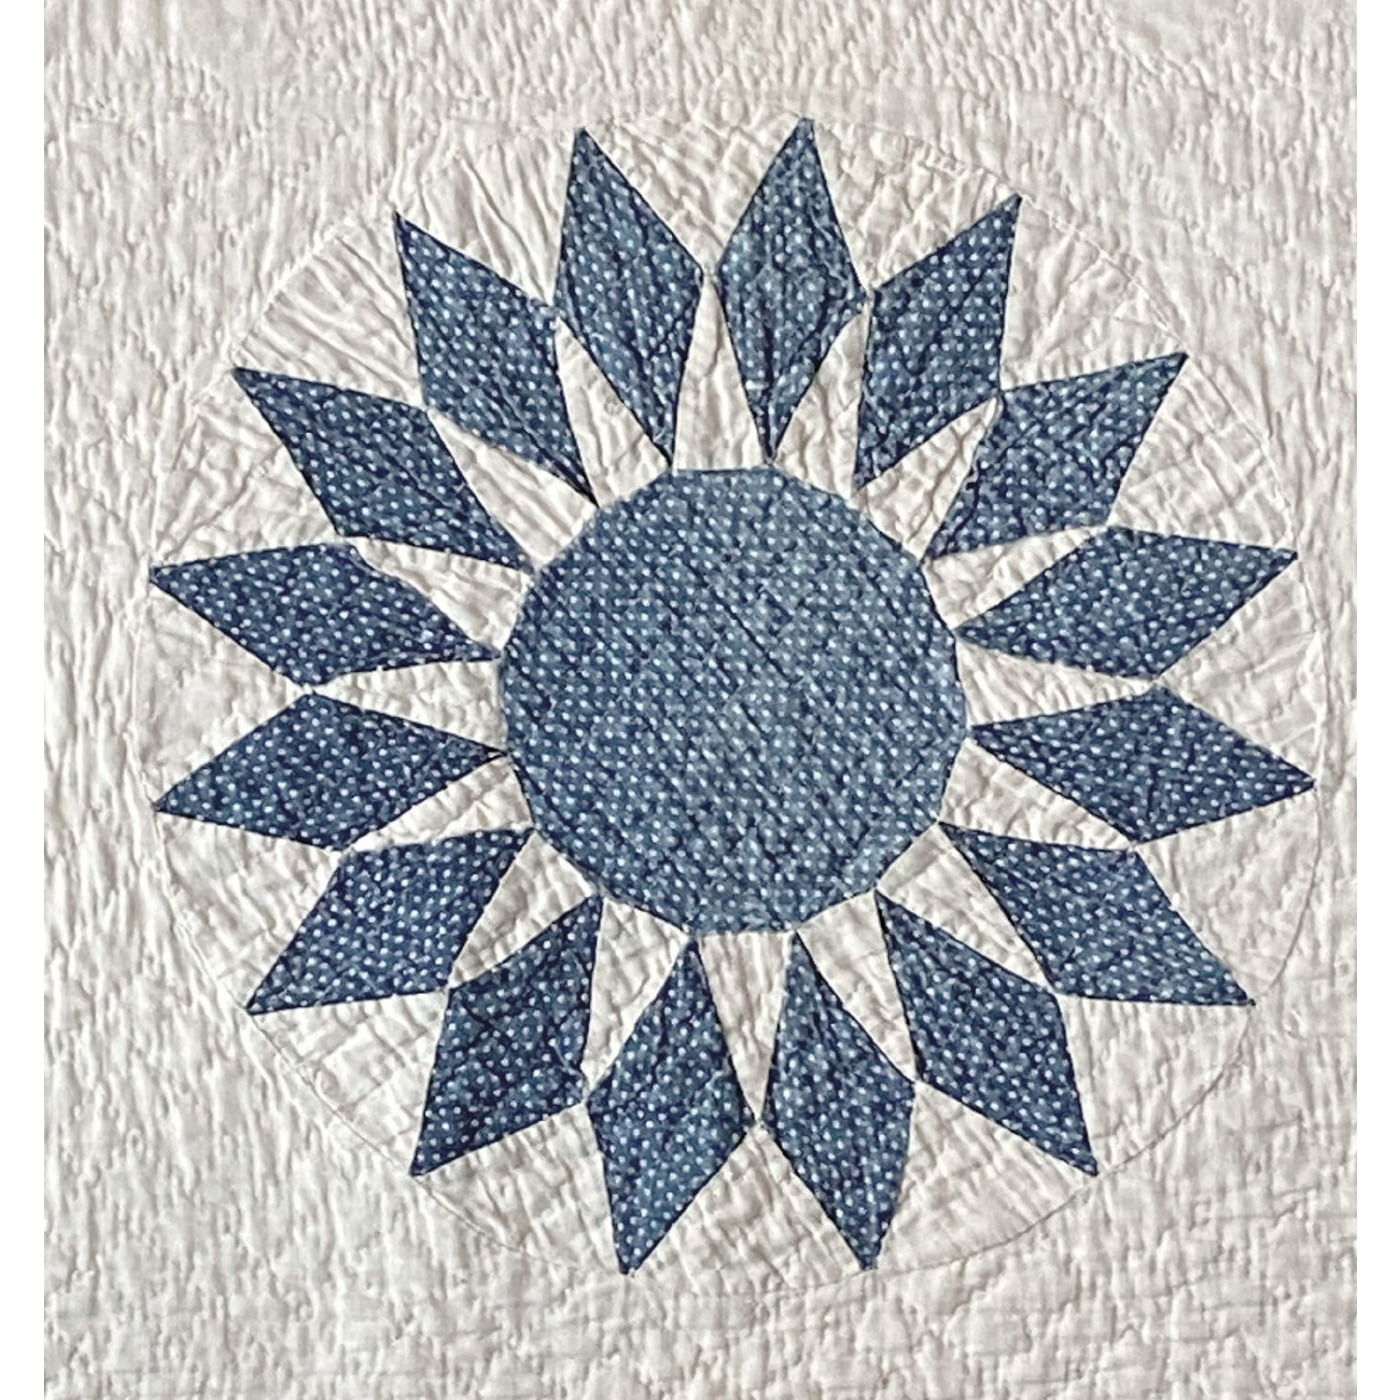 Mesmerizing Early Blue and White Mariner's Compass Sunflower Quilt